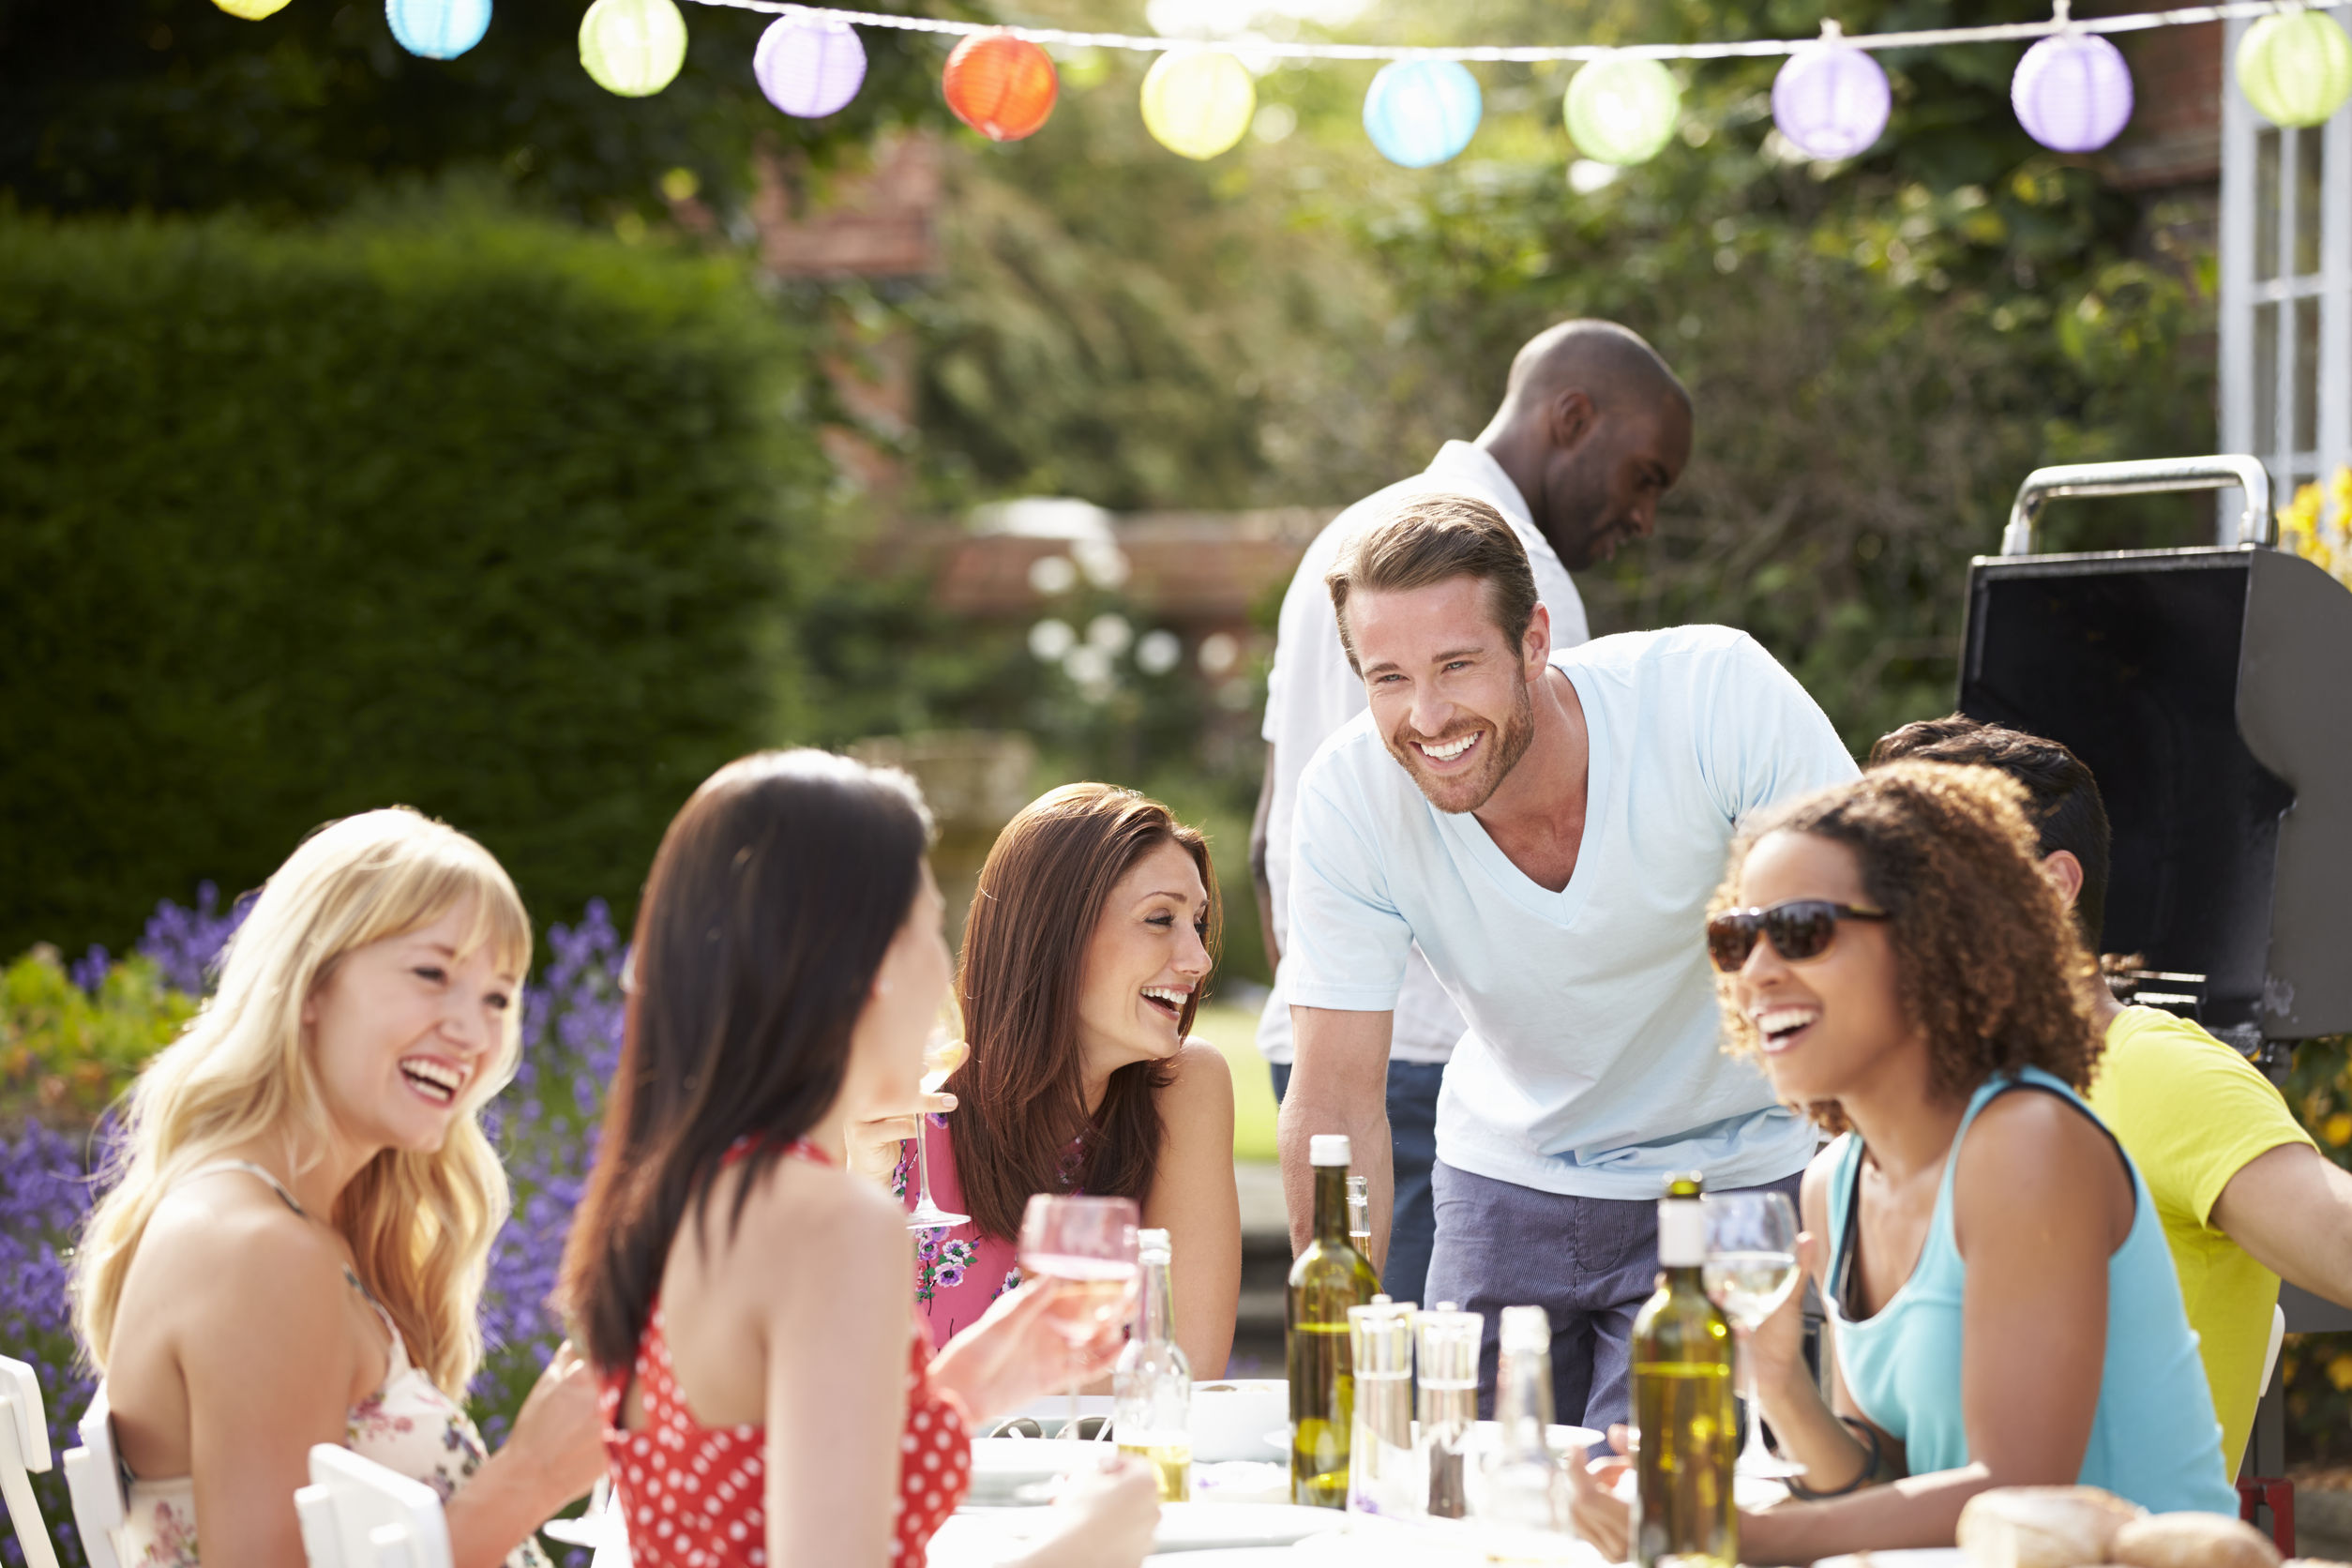 outdoor-birthday-party-ideas.jpg